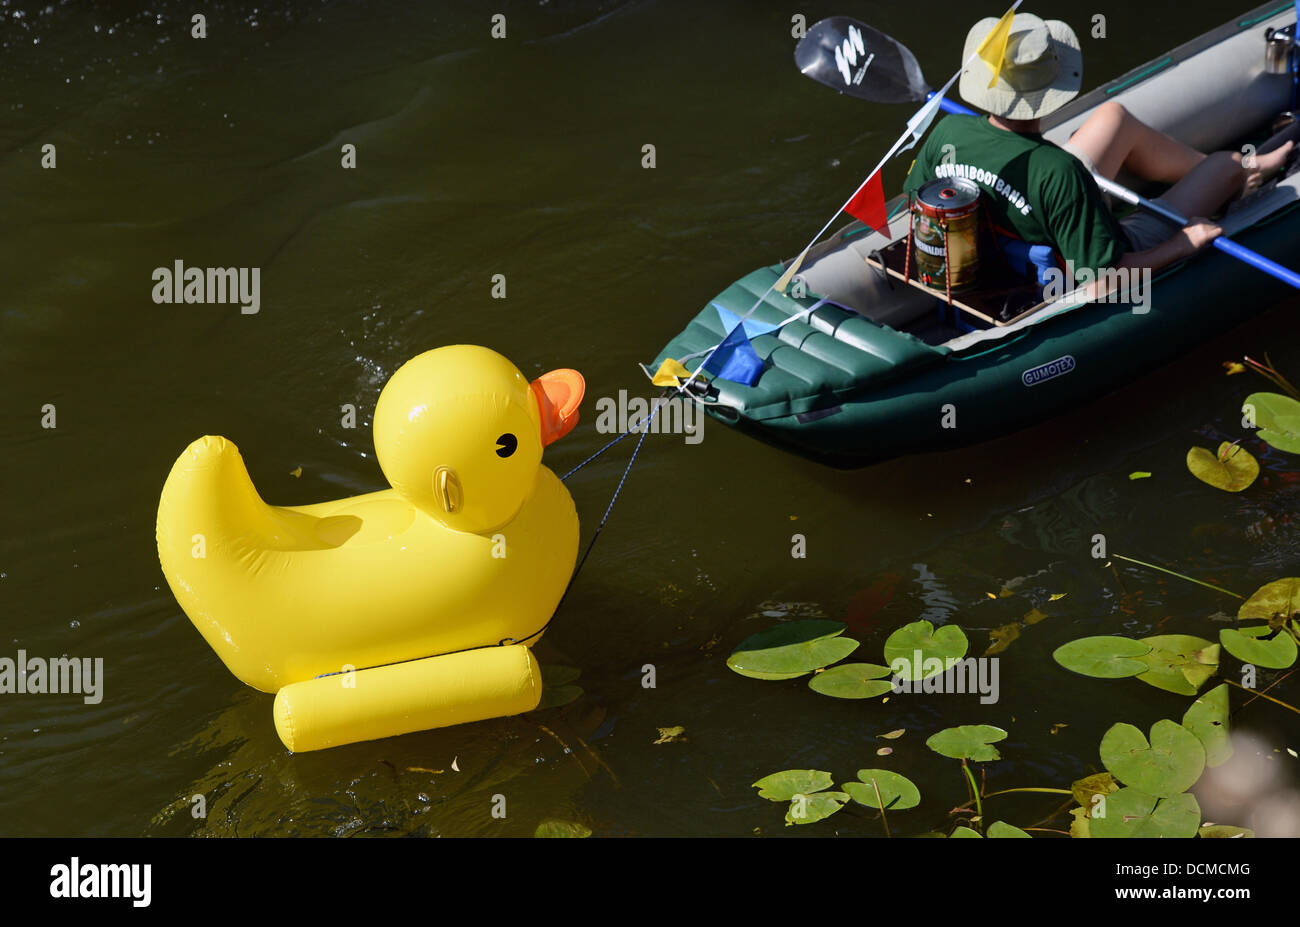 Rubber Duck Race Germany Stock Photos & Rubber Duck Race Germany ...